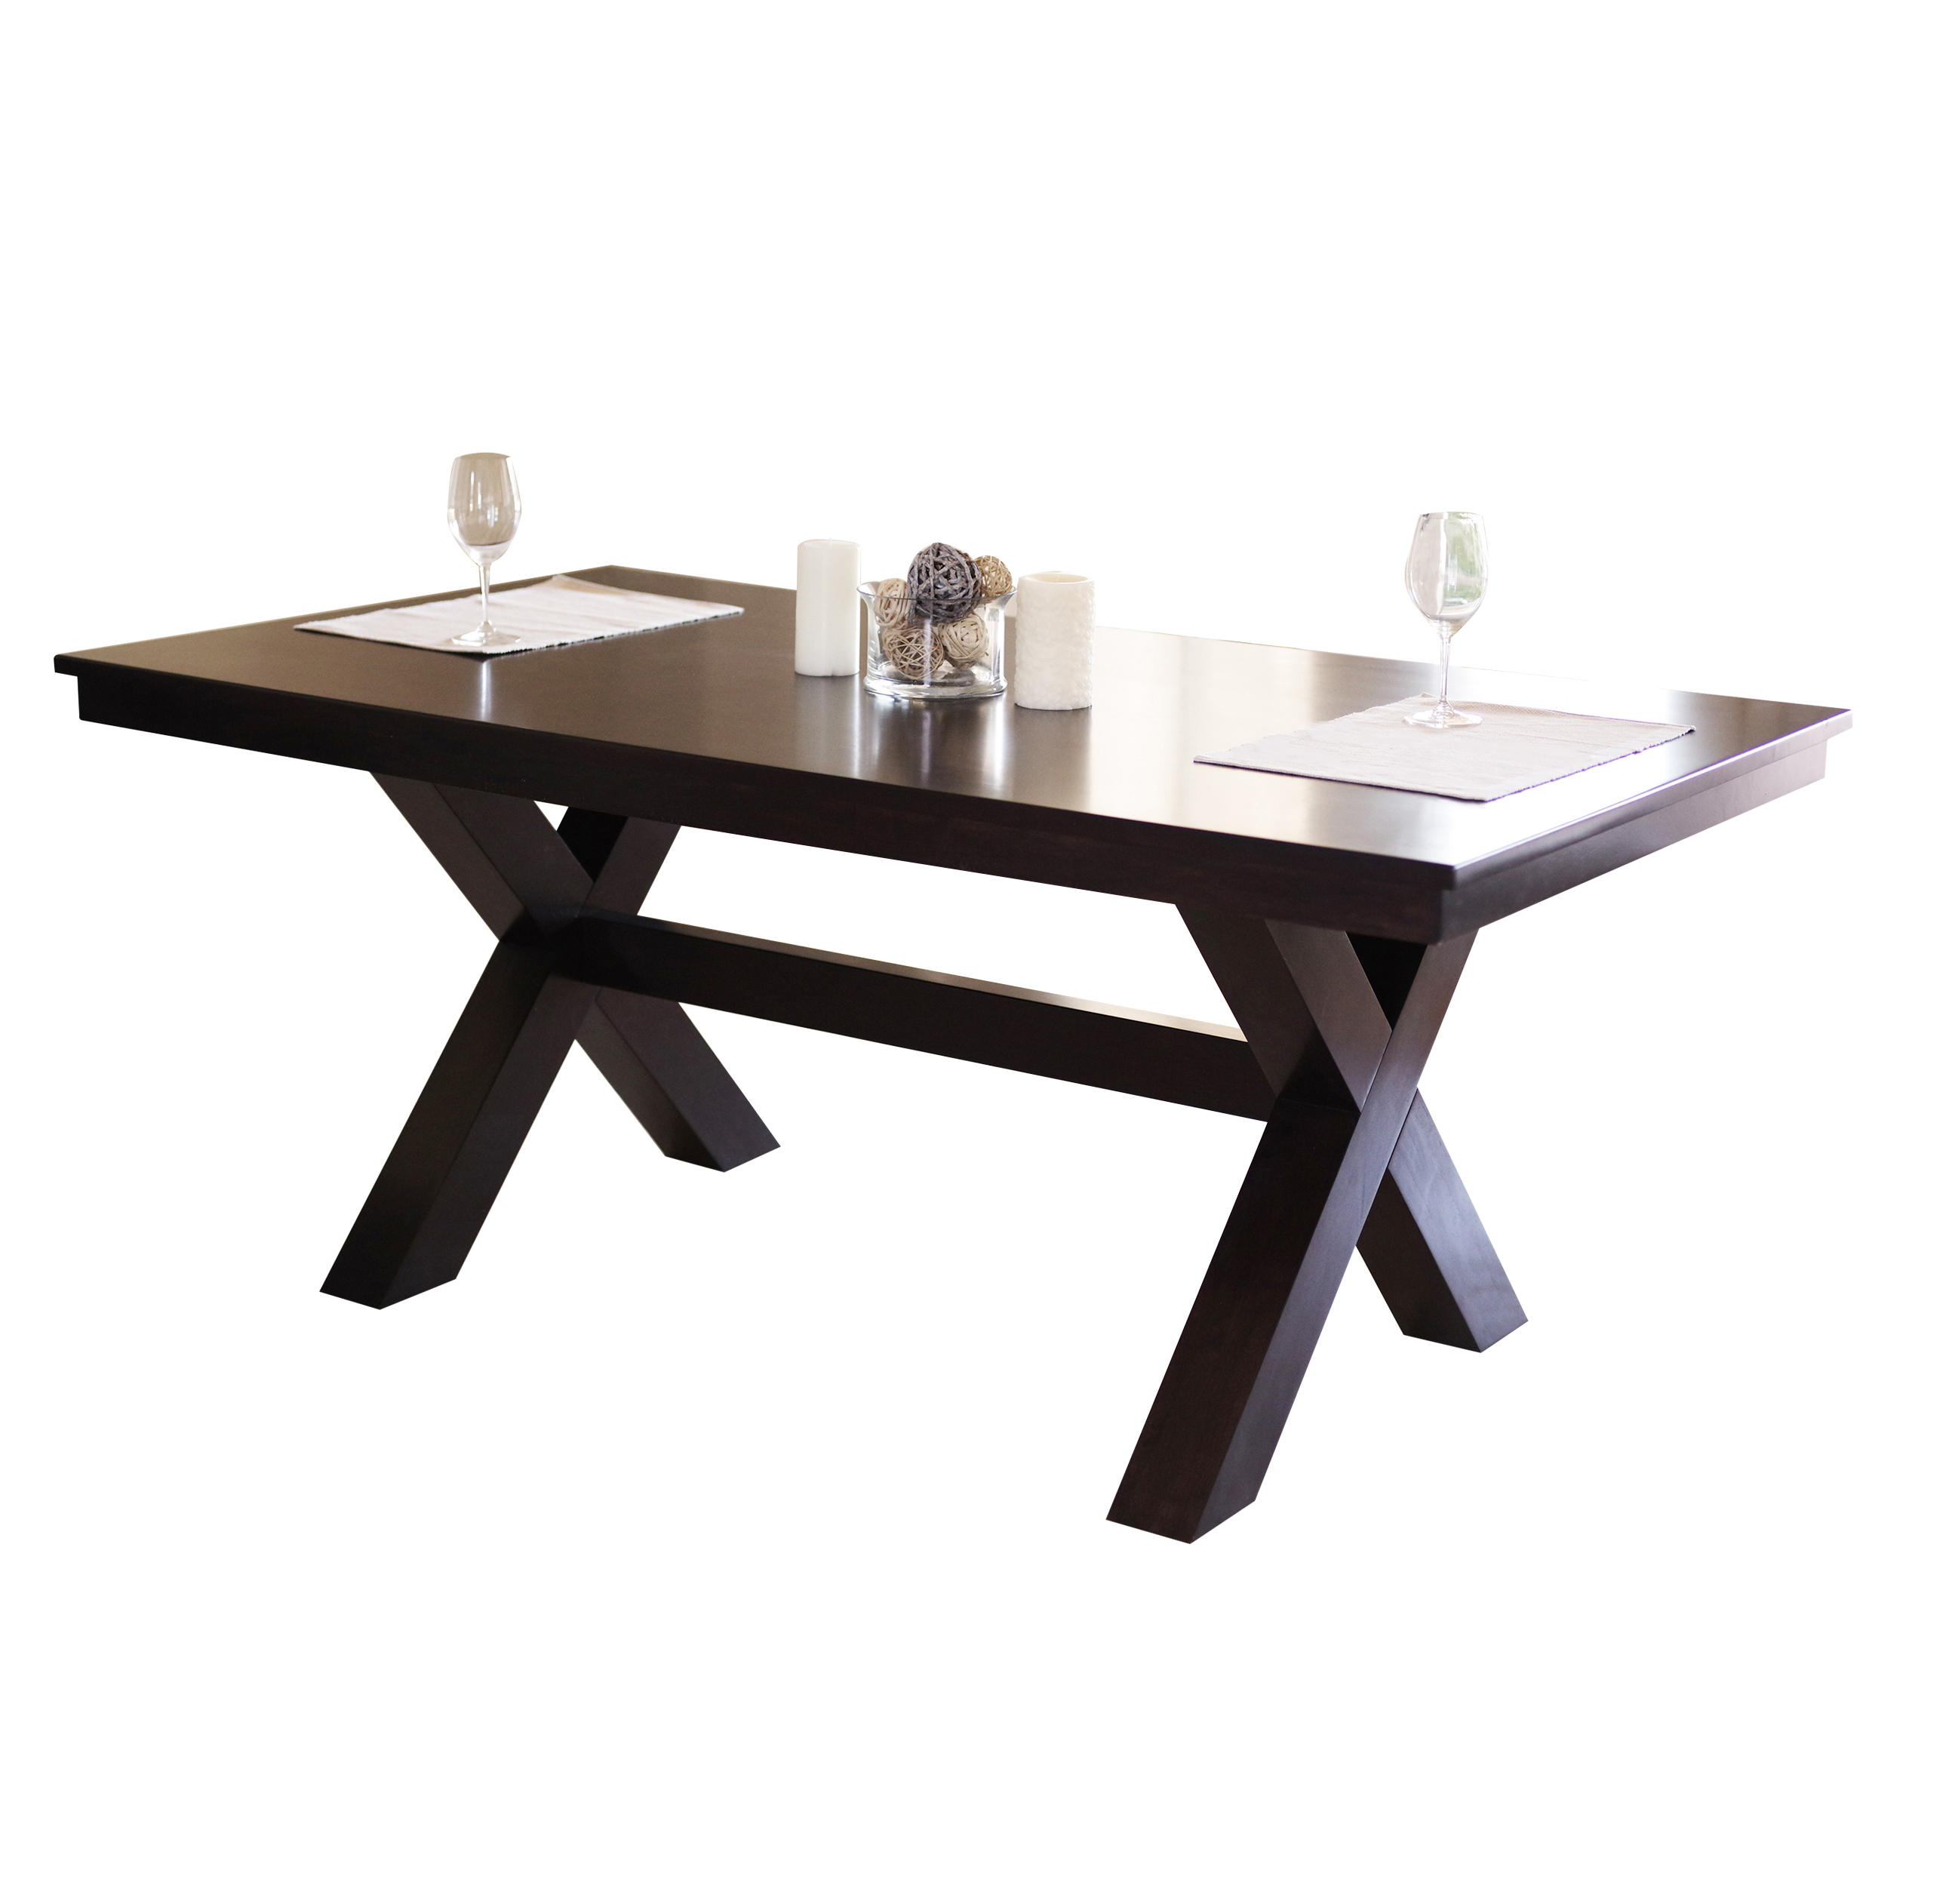 Devon & Claire Natasha Espresso Dining Table by Devon & Claire